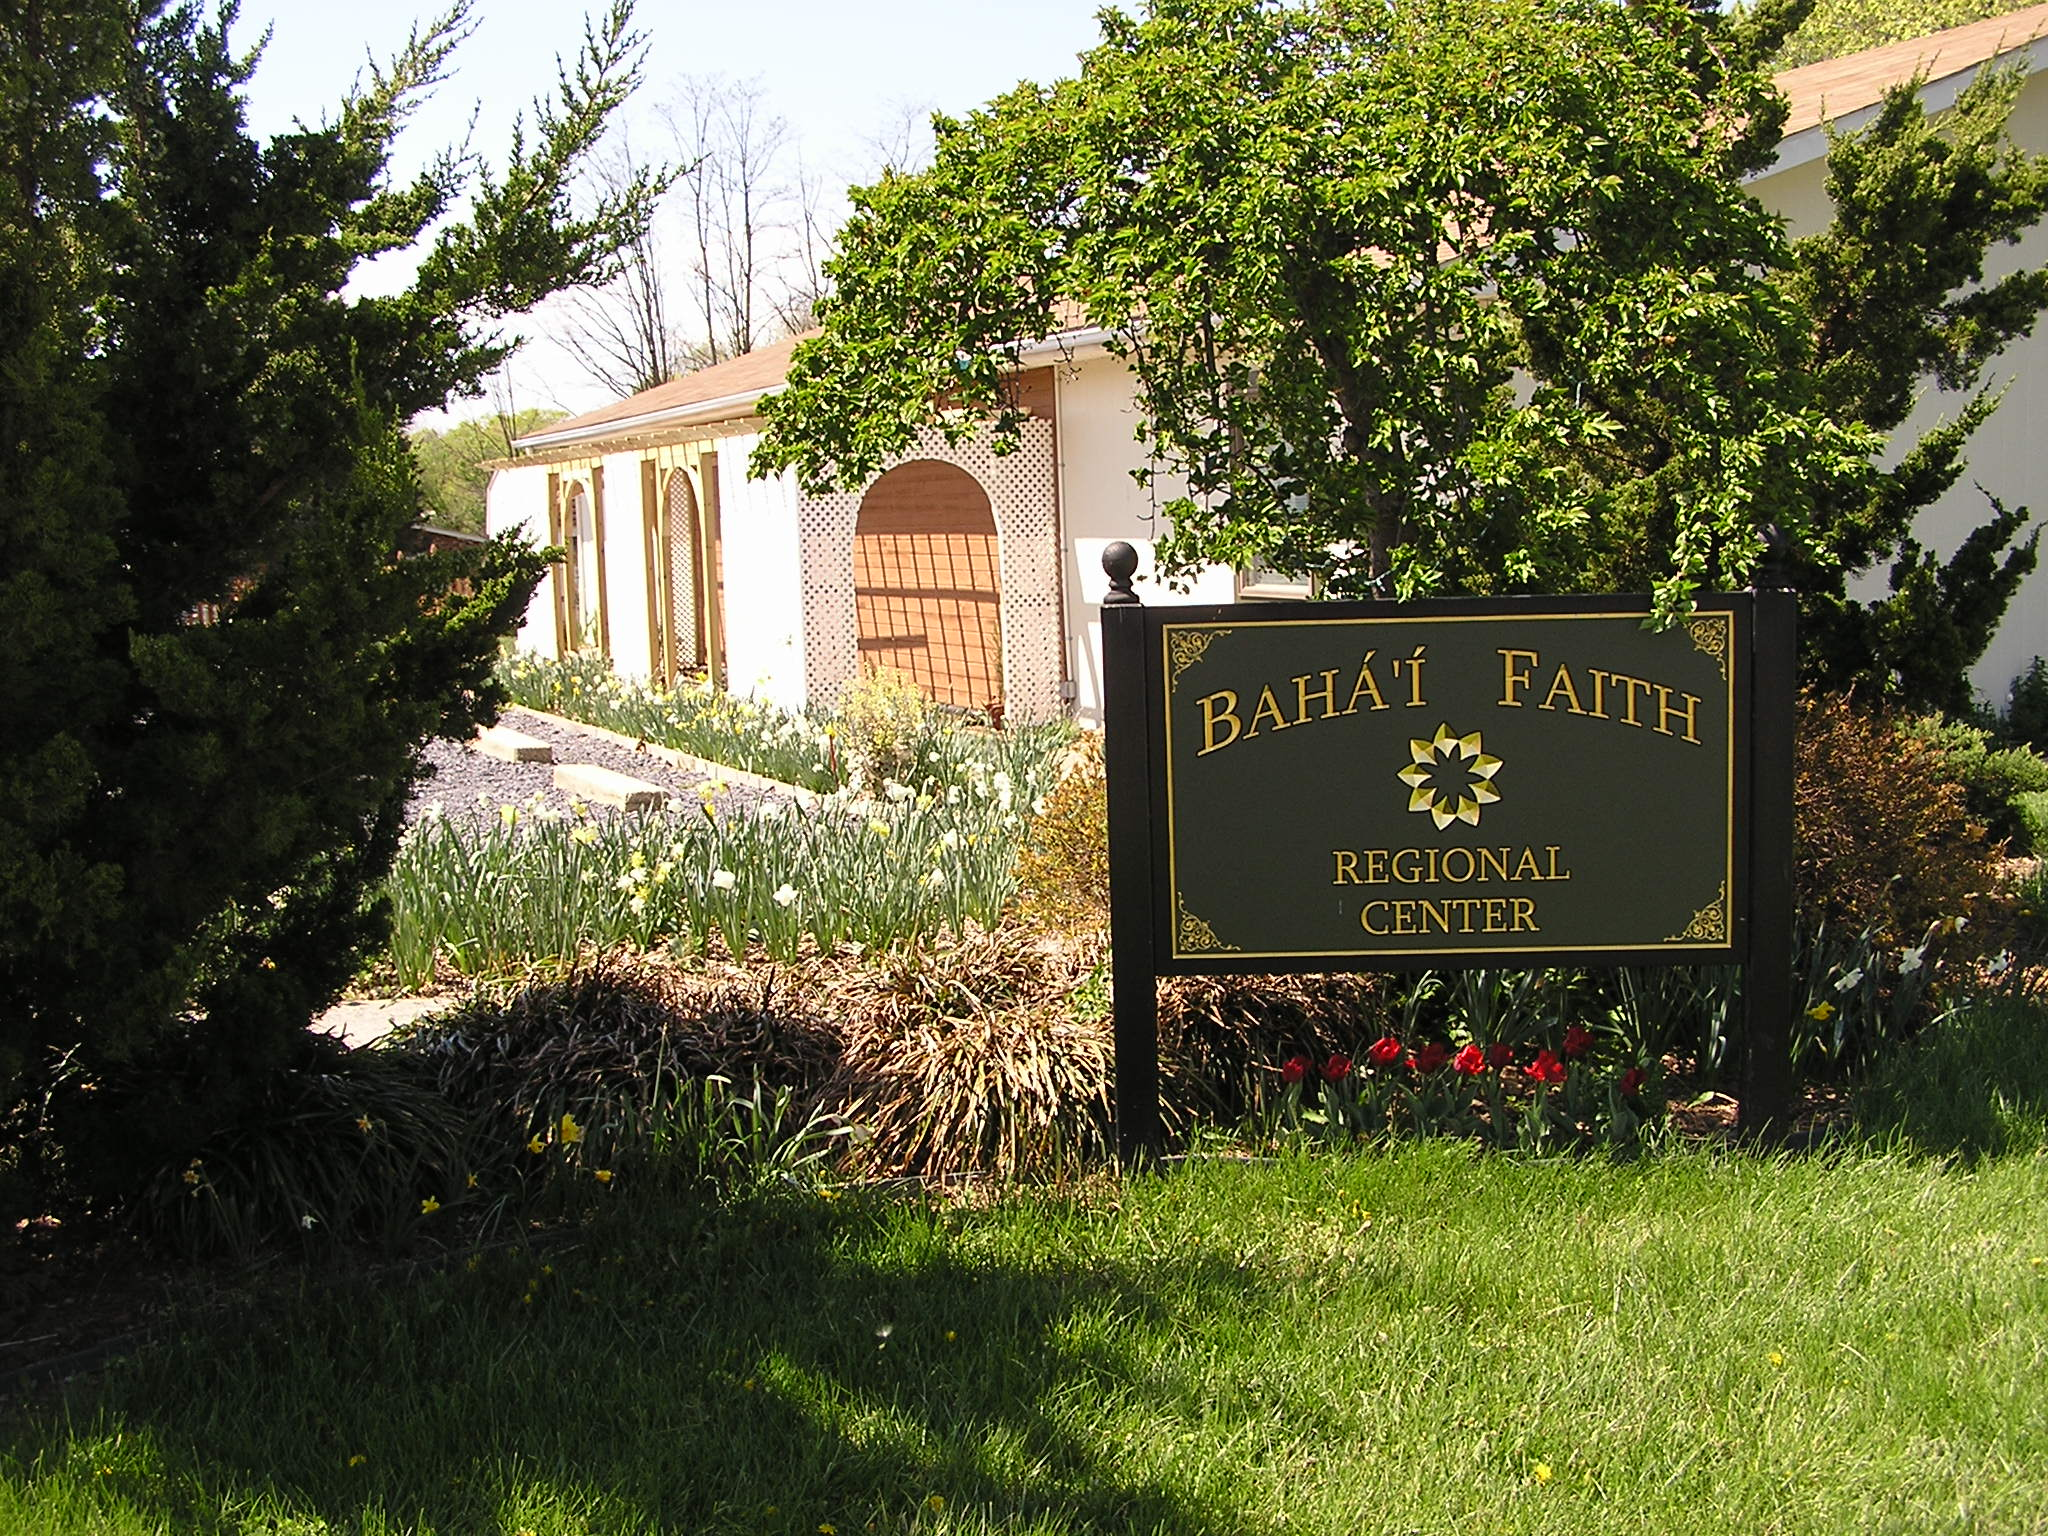 Bahá'í Center and Gardens